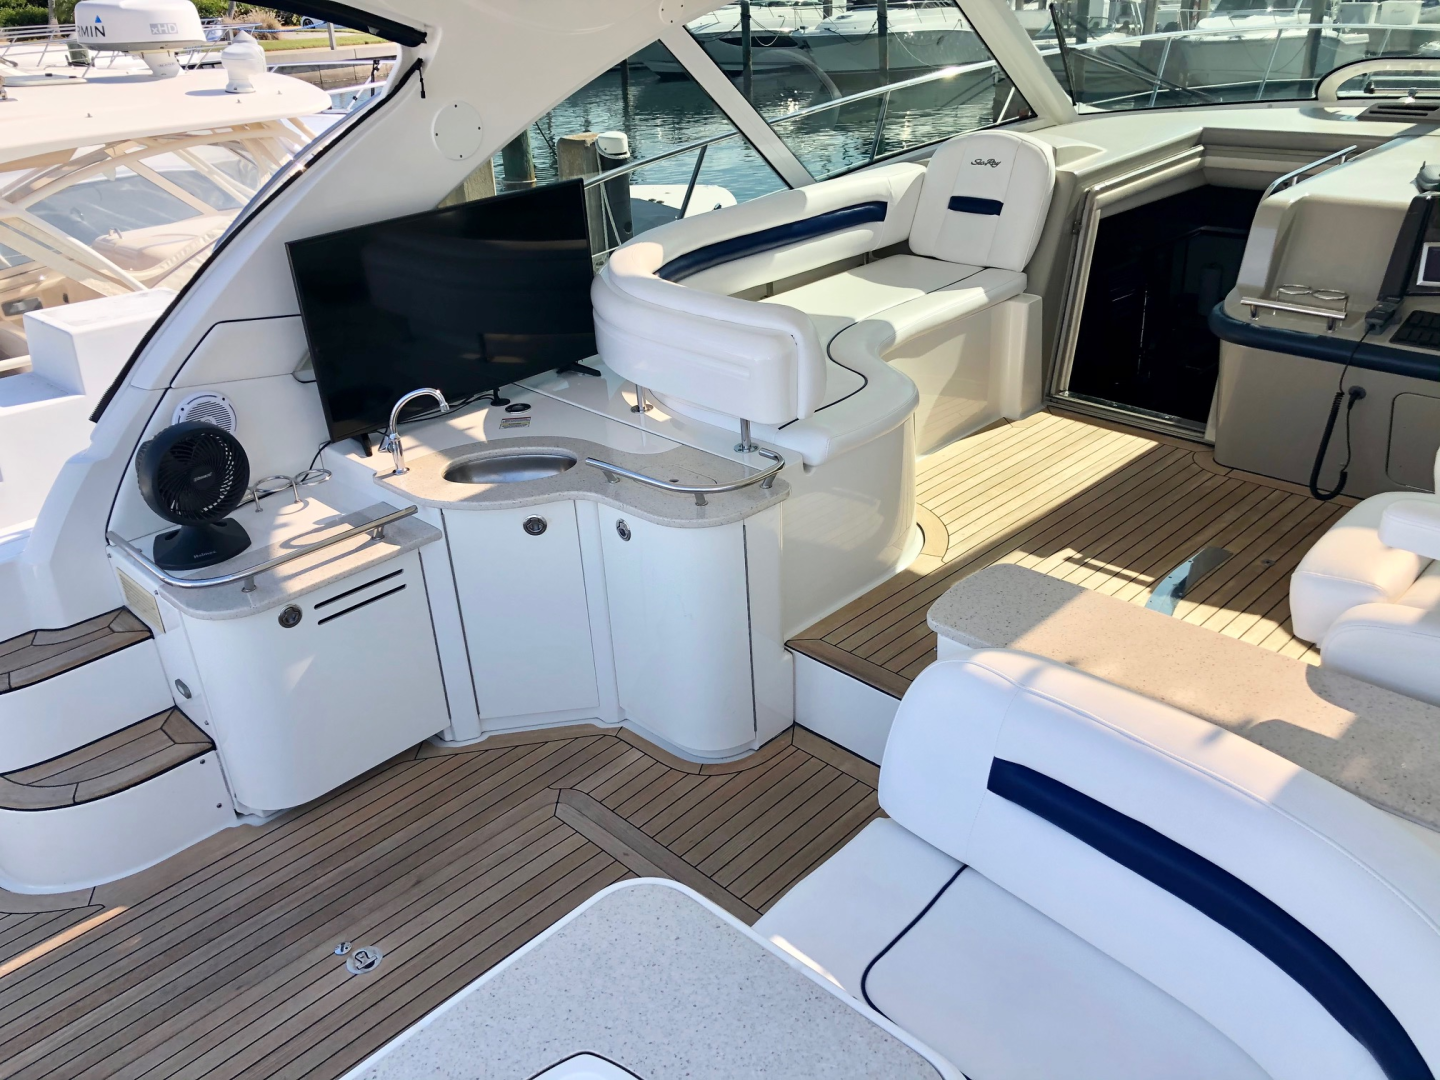 Sea Ray-48 Sundancer 2009-No Name Longboat Key-Florida-United States-2009 Sea Ray 470 Sundancer-1594859 | Thumbnail